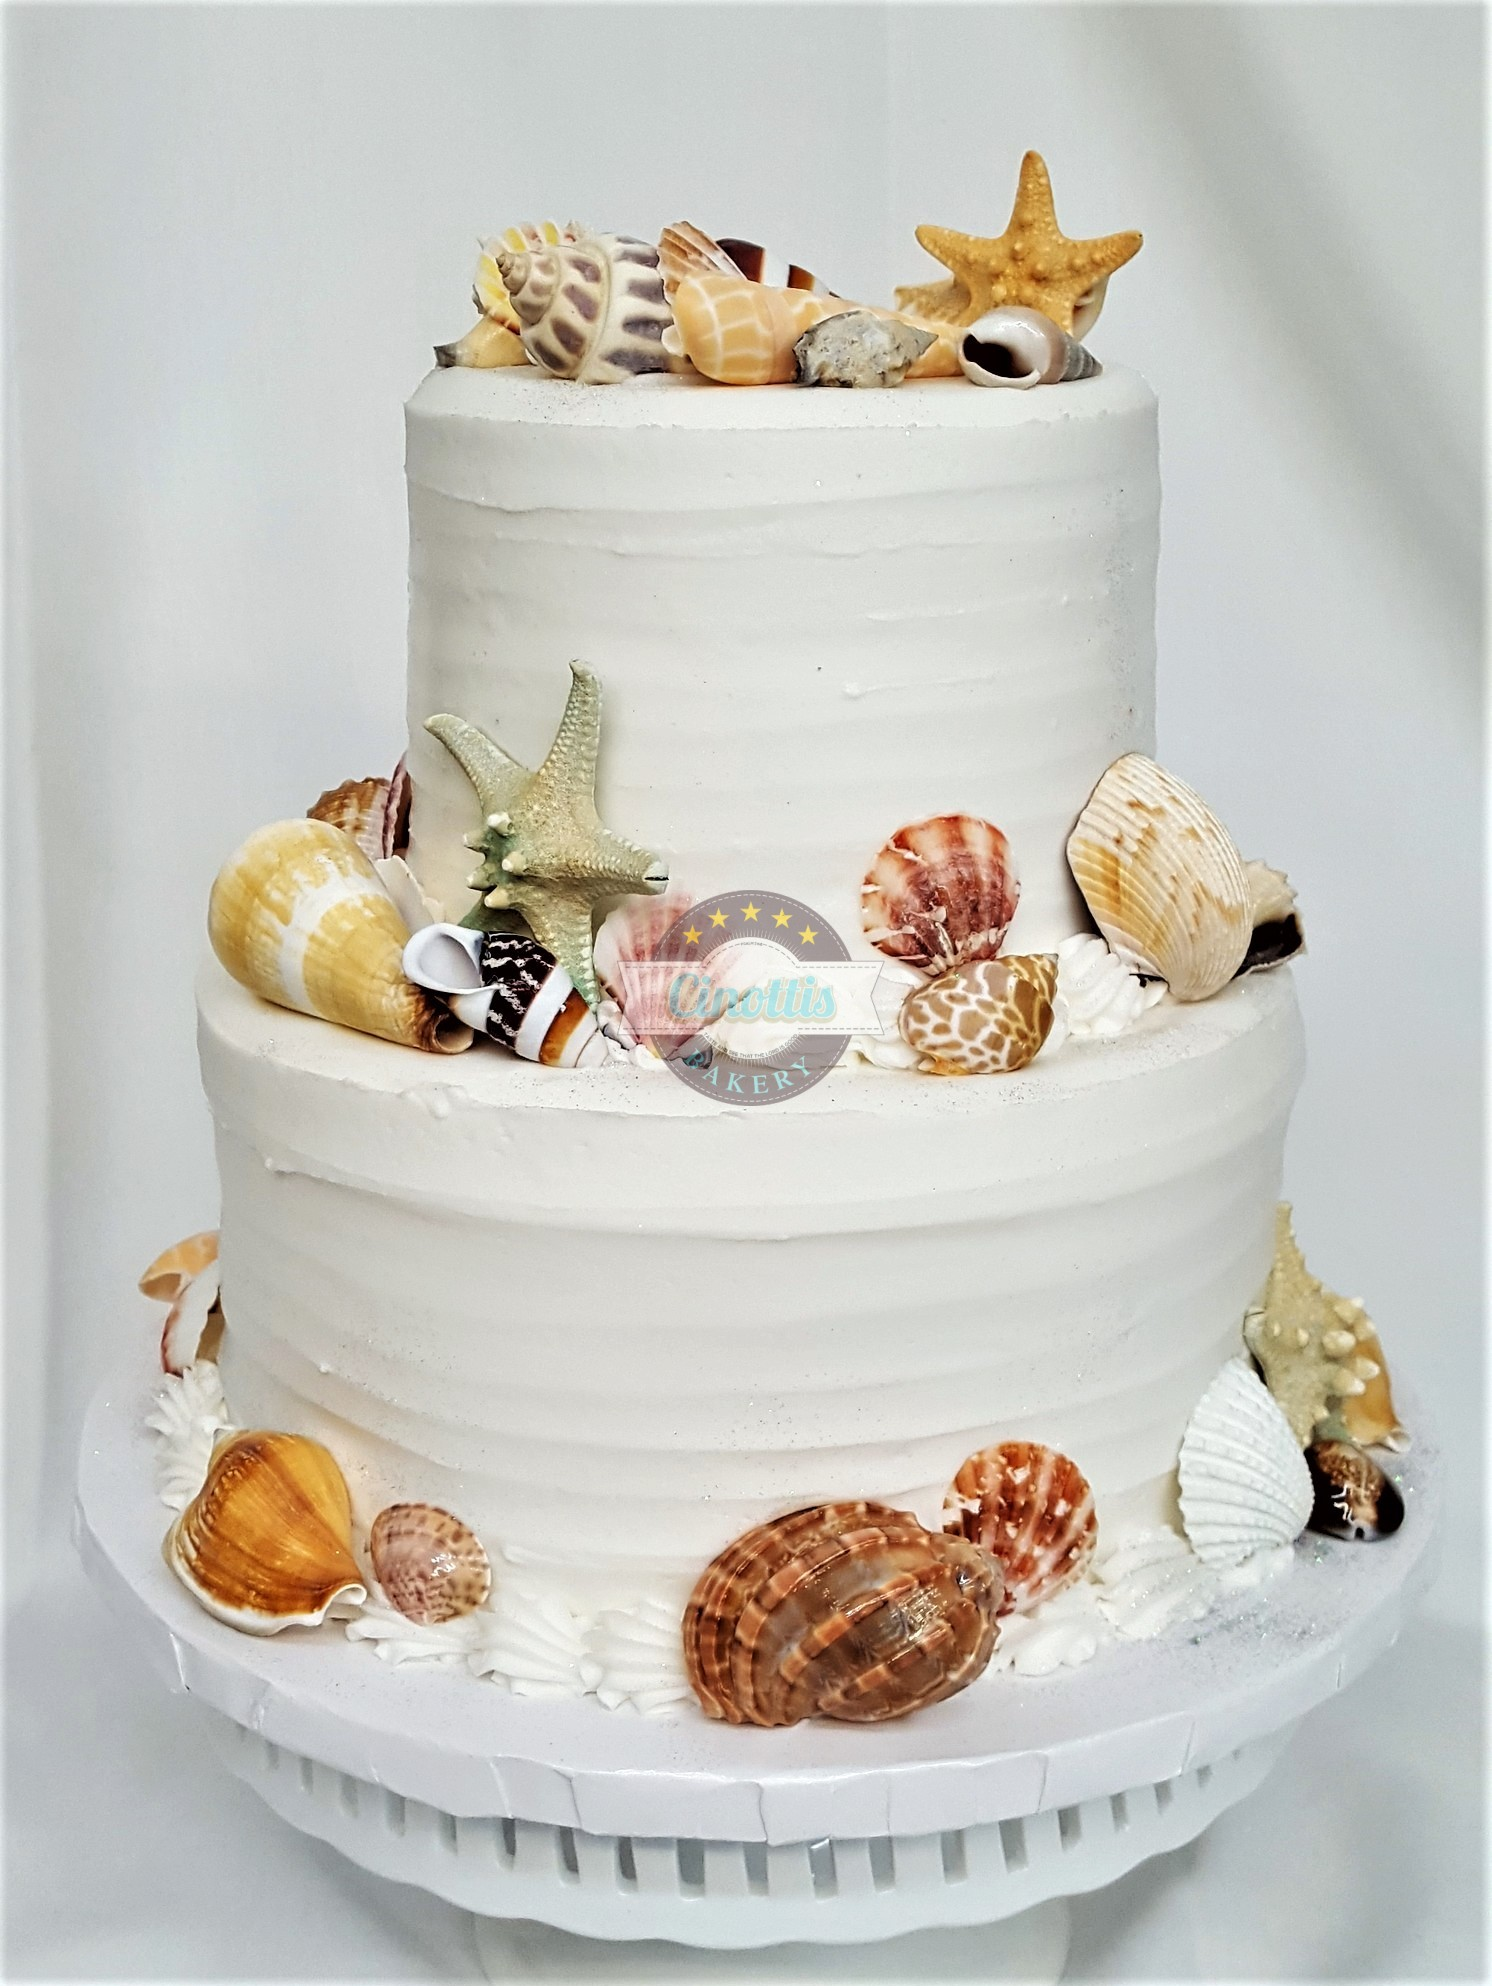 Shells, Wedding, Cake, Shells, Beachy, Sand, Shore, Destination, Buttercream, Rustic, Simple, Birthday, Adult, Bridal, Jacksonville, Shower, Party